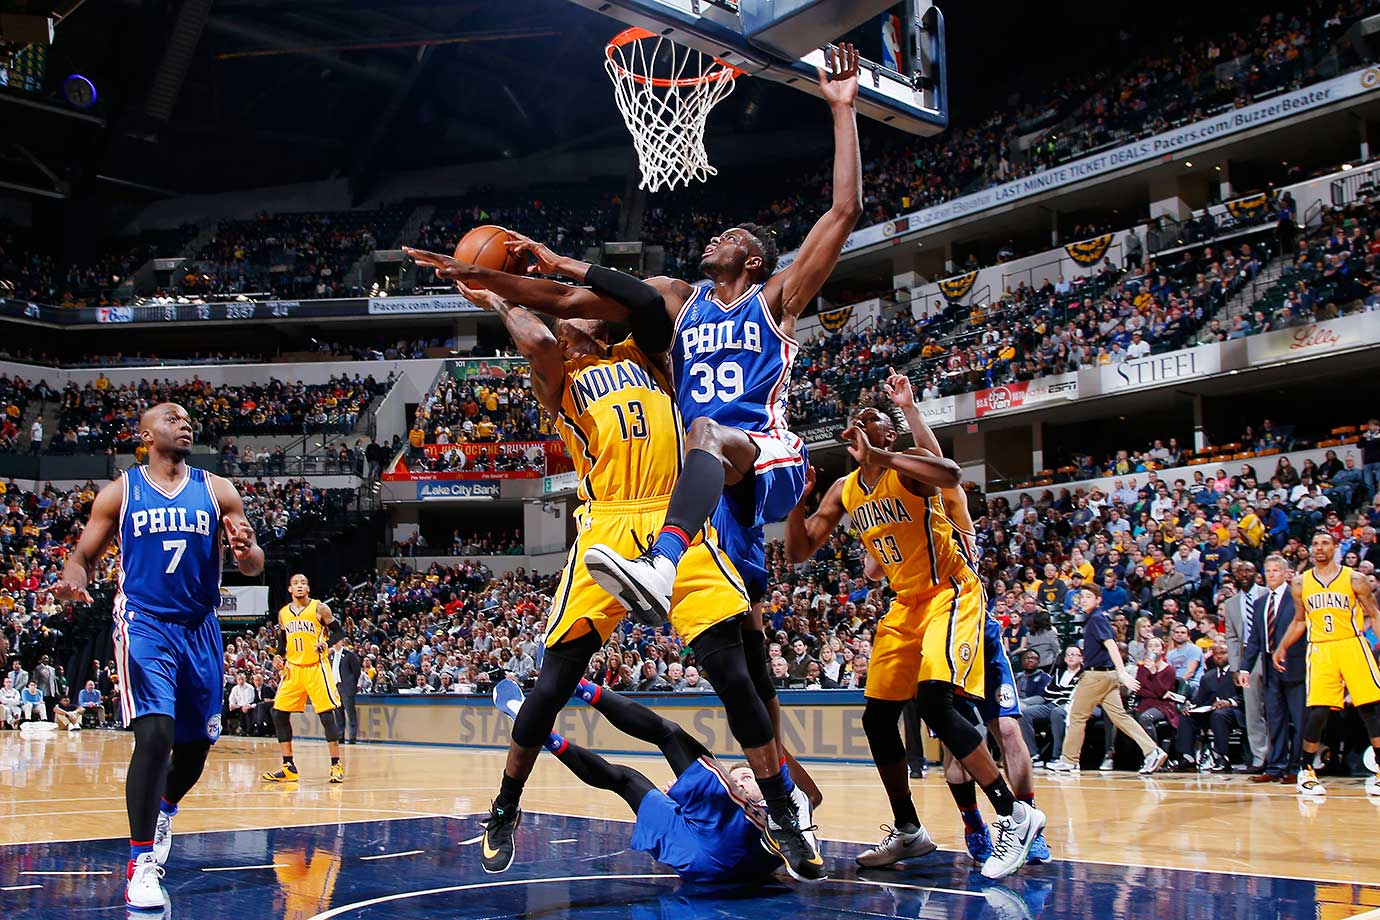 Paul George of the Indiana Pacers is fouled by Jerami Grant of the Philadelphia 76ers.